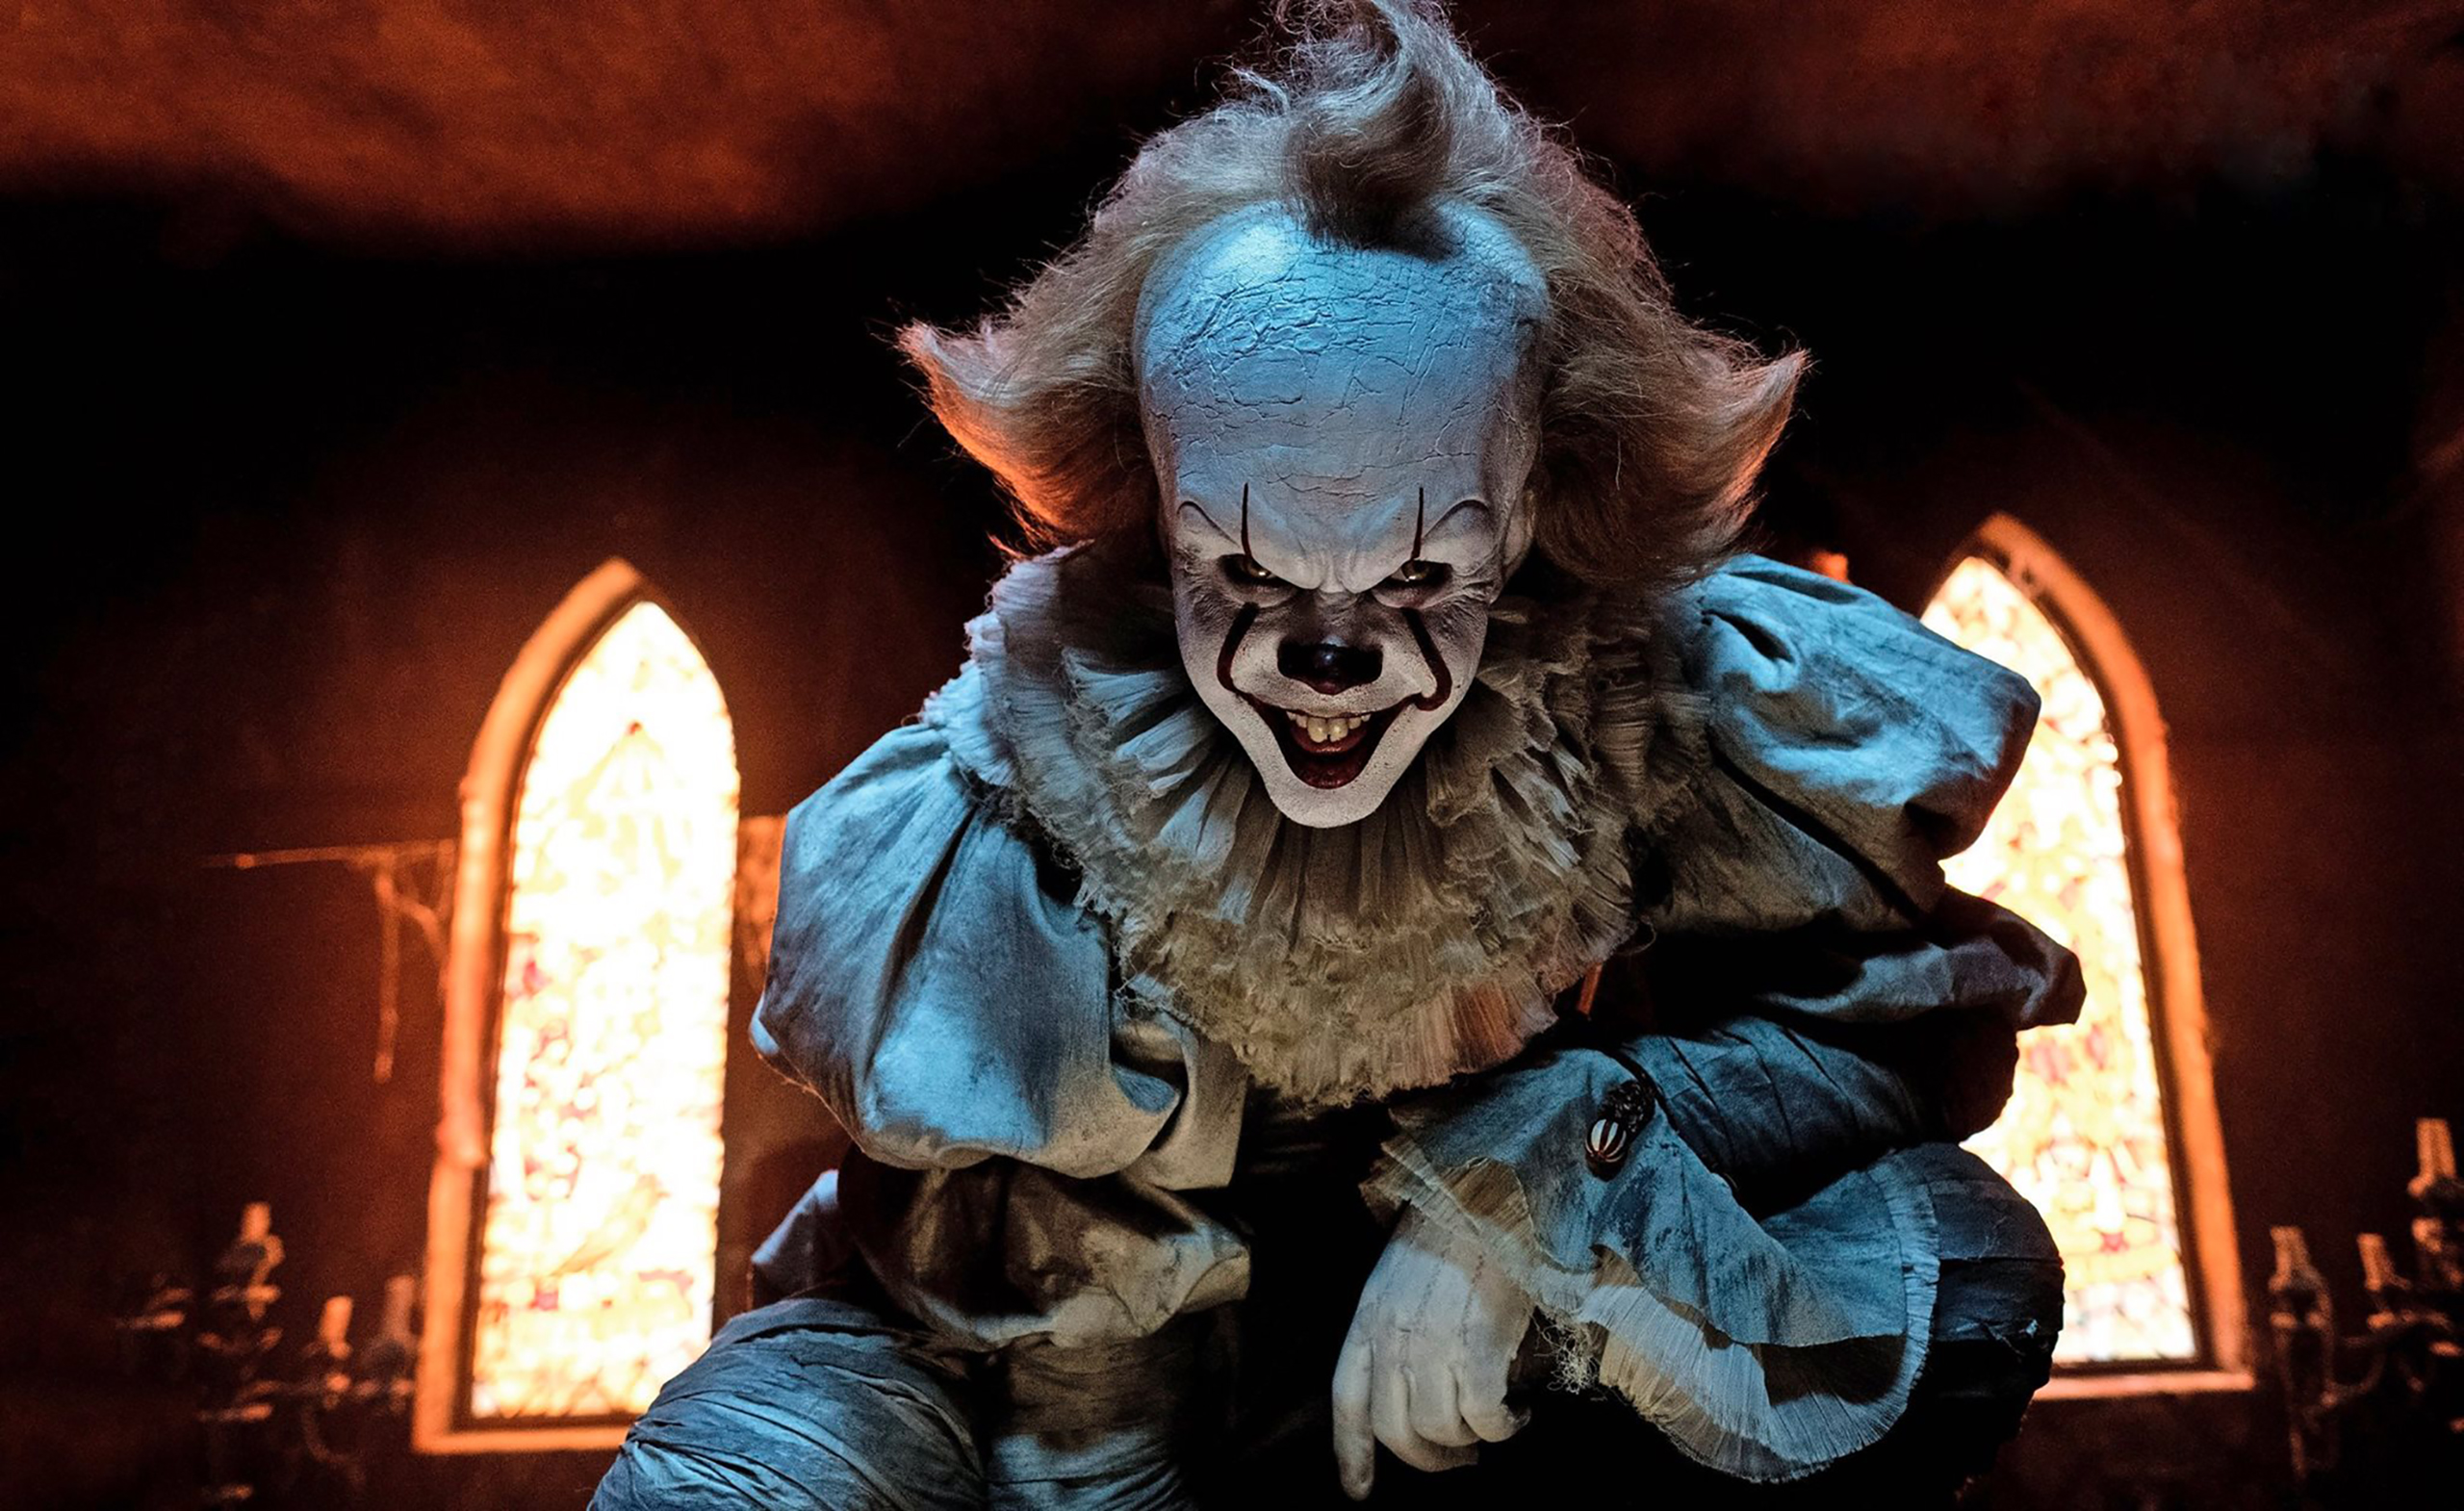 8 Thrillers and Horror Movies All Related to Clowns